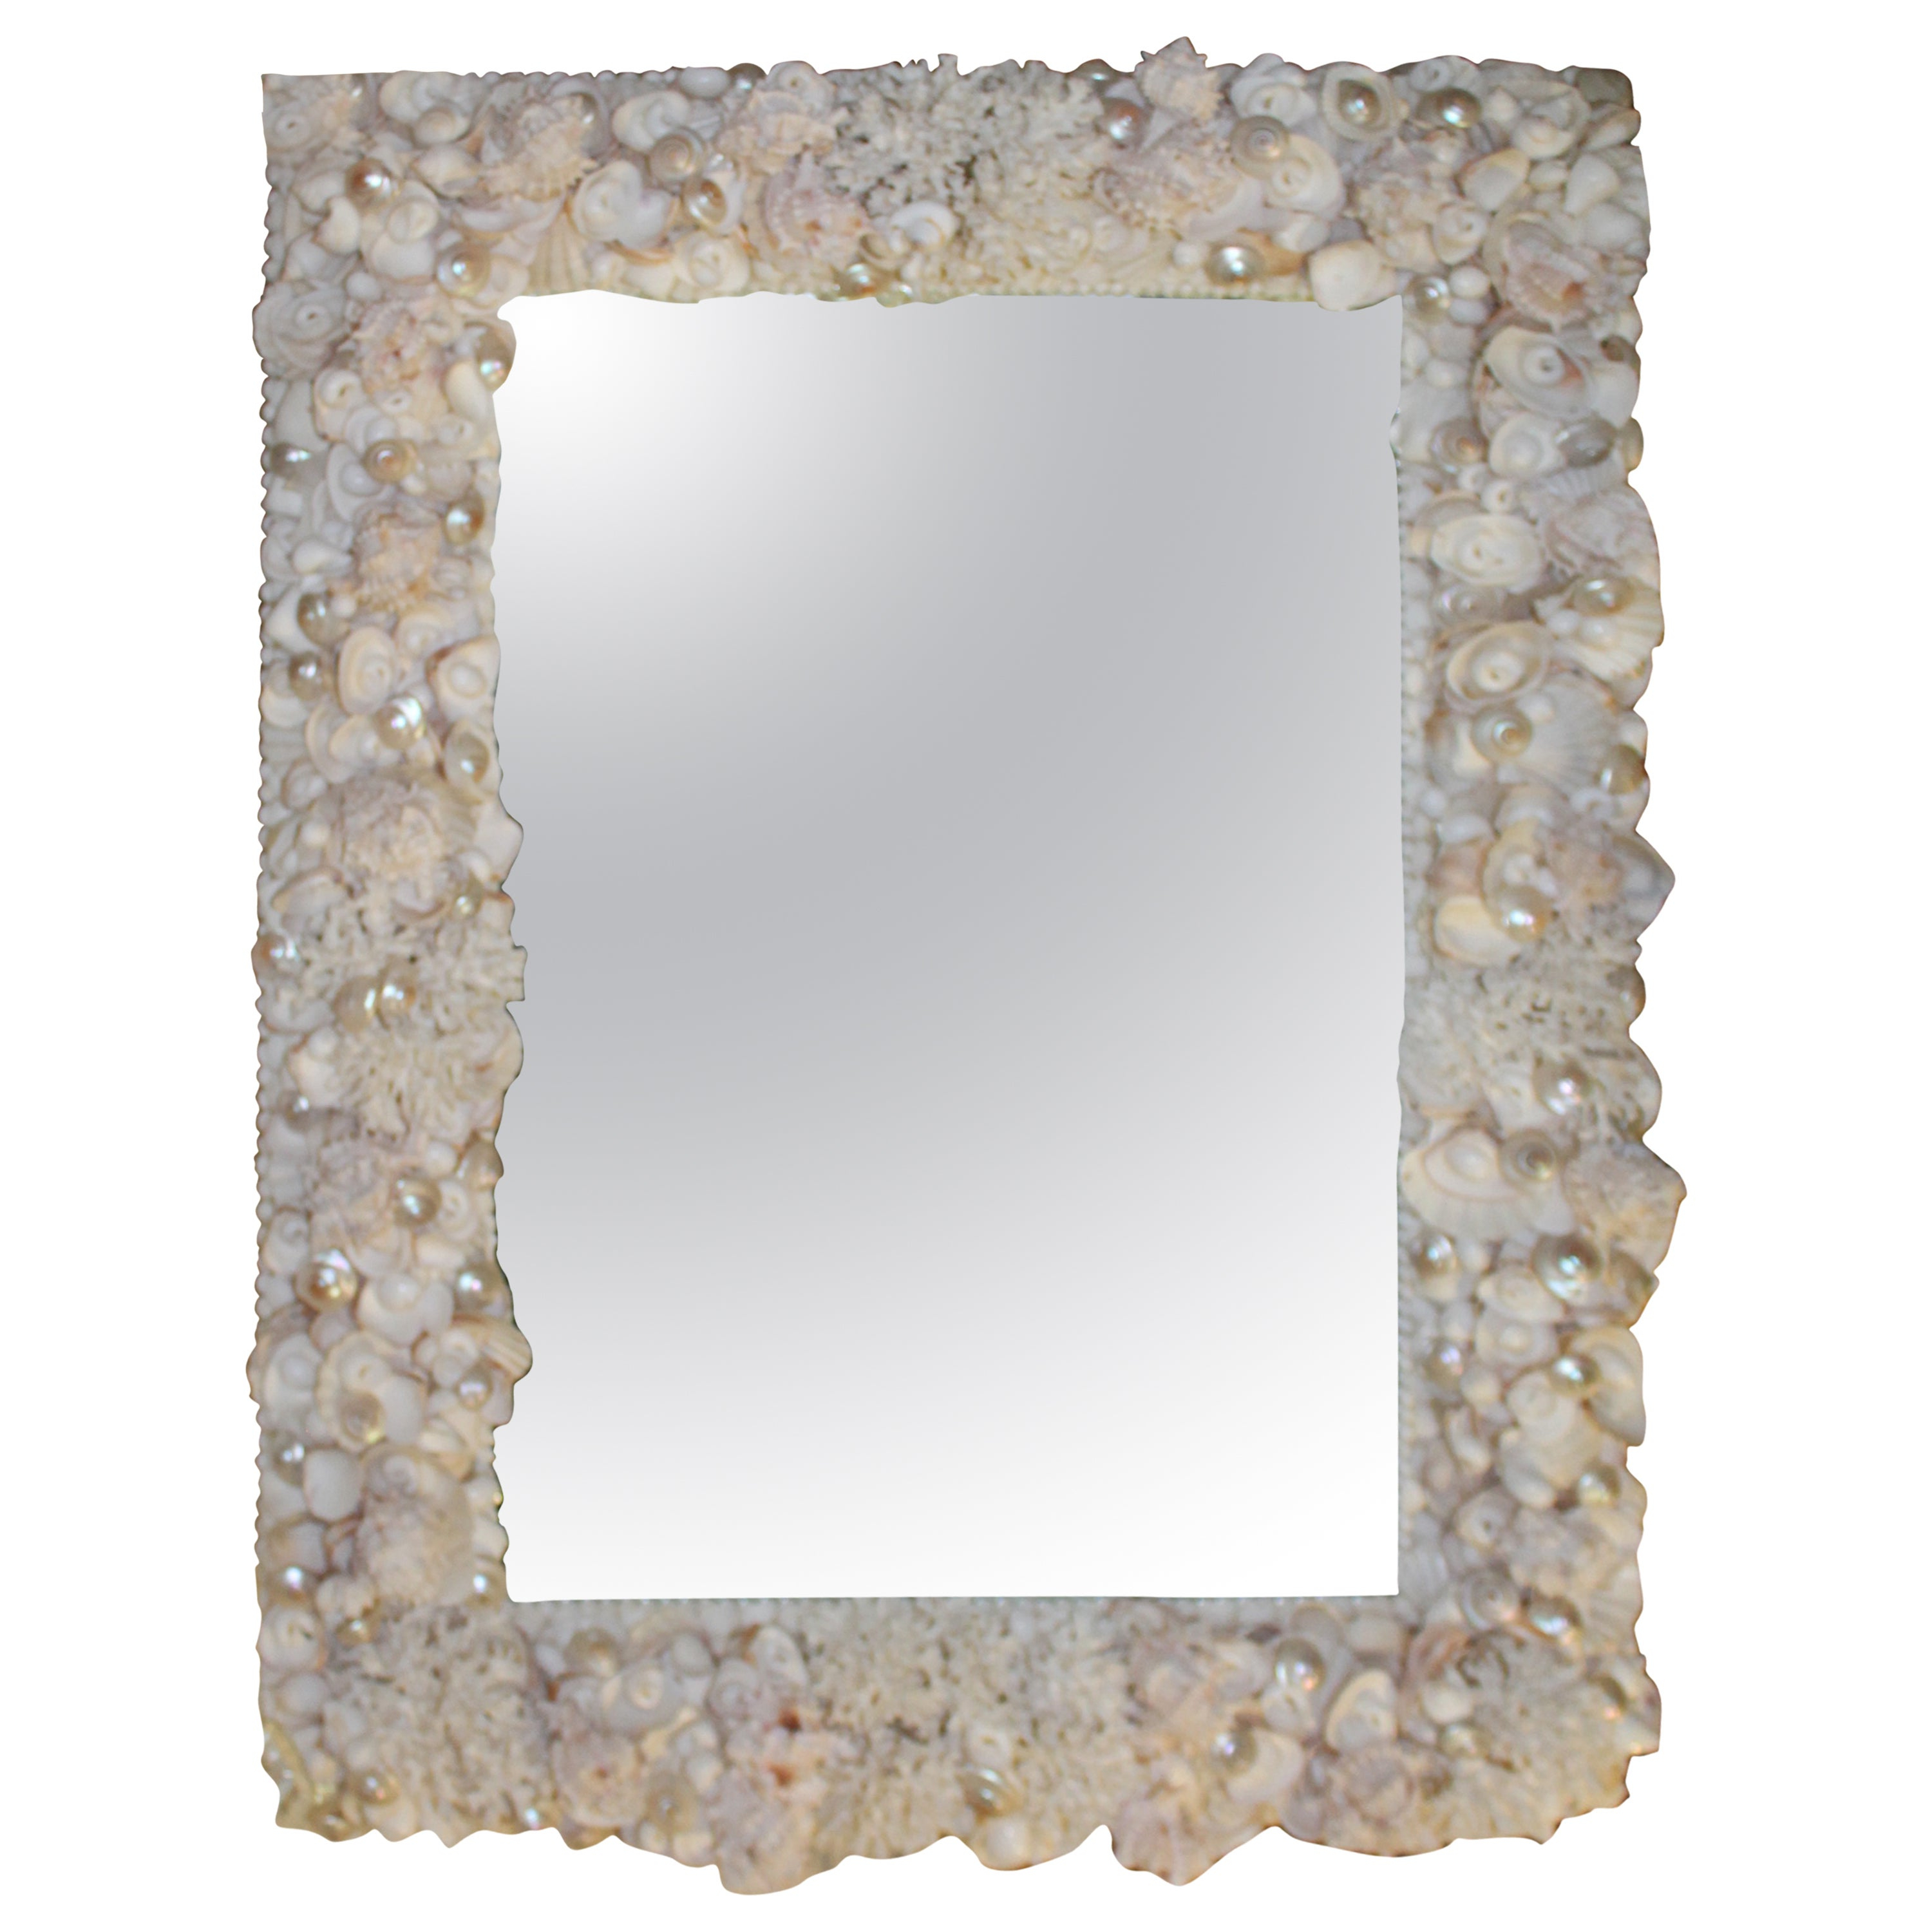 Seashell Wall Mirrors Within Best And Newest Seashell Encrusted Vintage Wall Mirror Palm Beach Vintage Coral Shell (View 16 of 20)